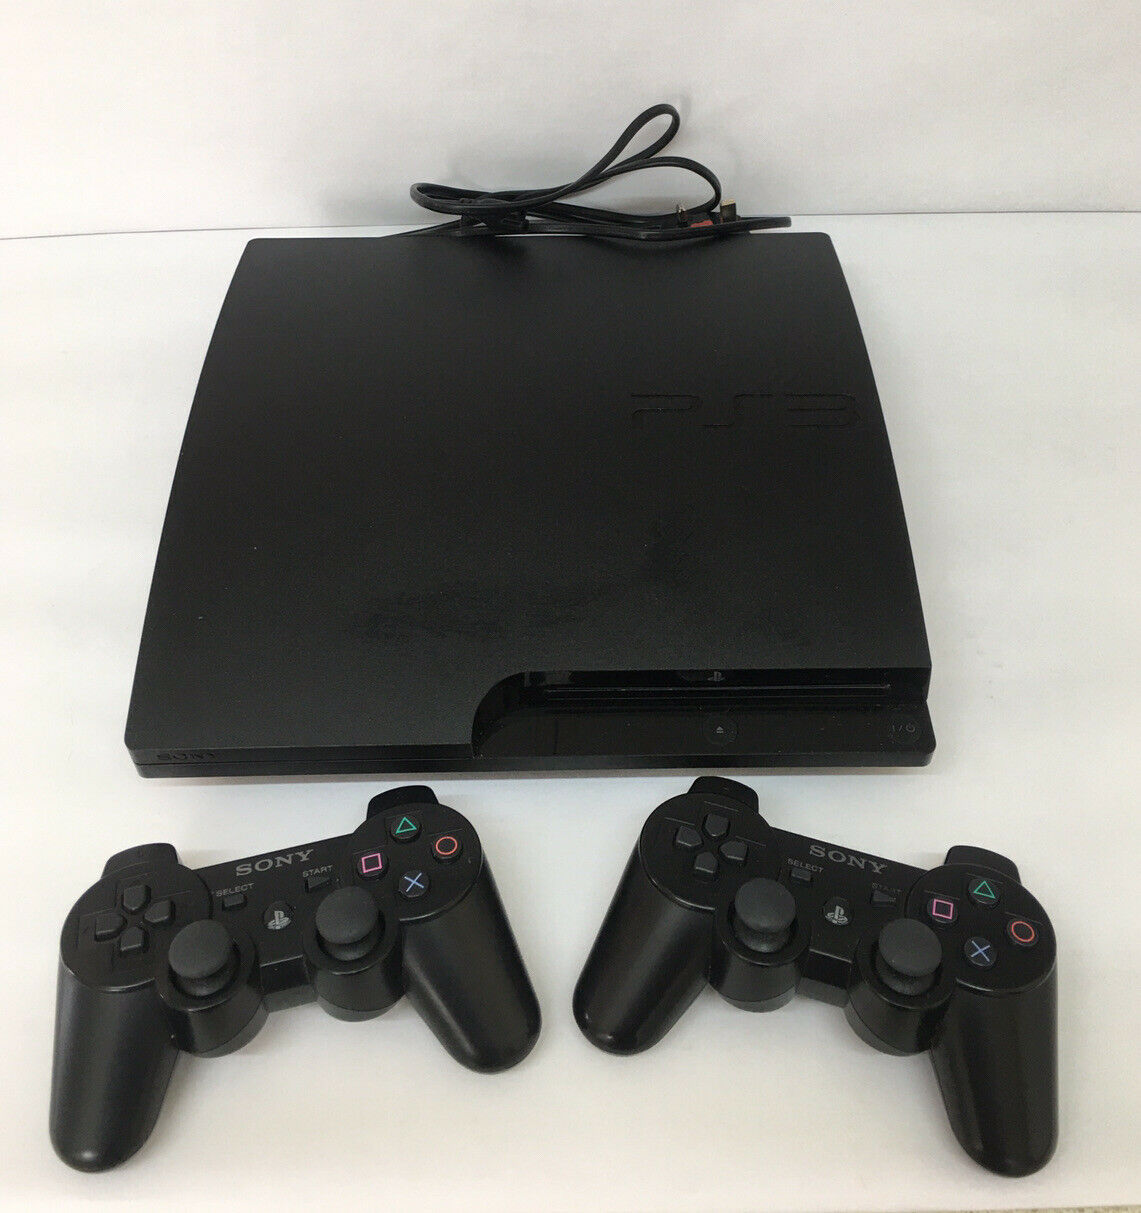 Sony Playstation 3 (PS3) Console, Power Supply & 2 Controlers. Working. No Leads